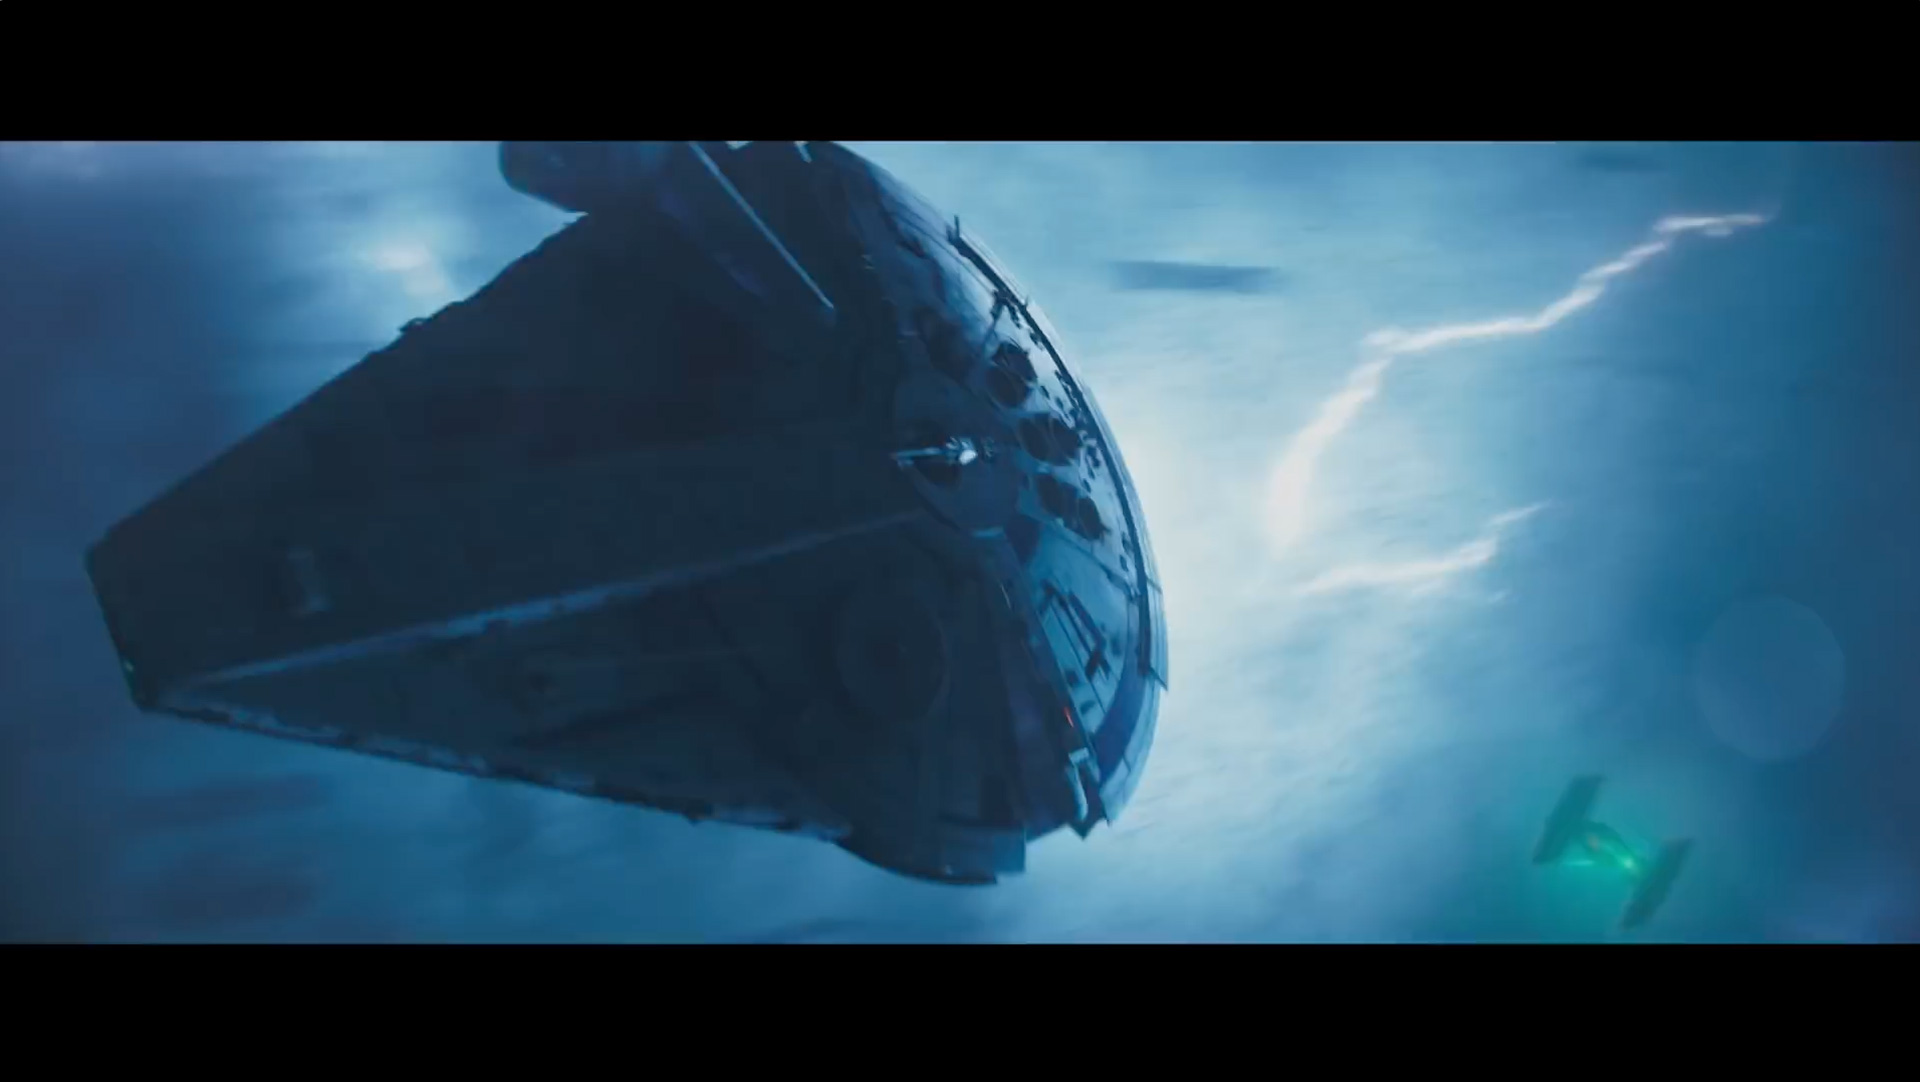 Solo A Star Wars Story The Art Of Vfxthe Art Of Vfx